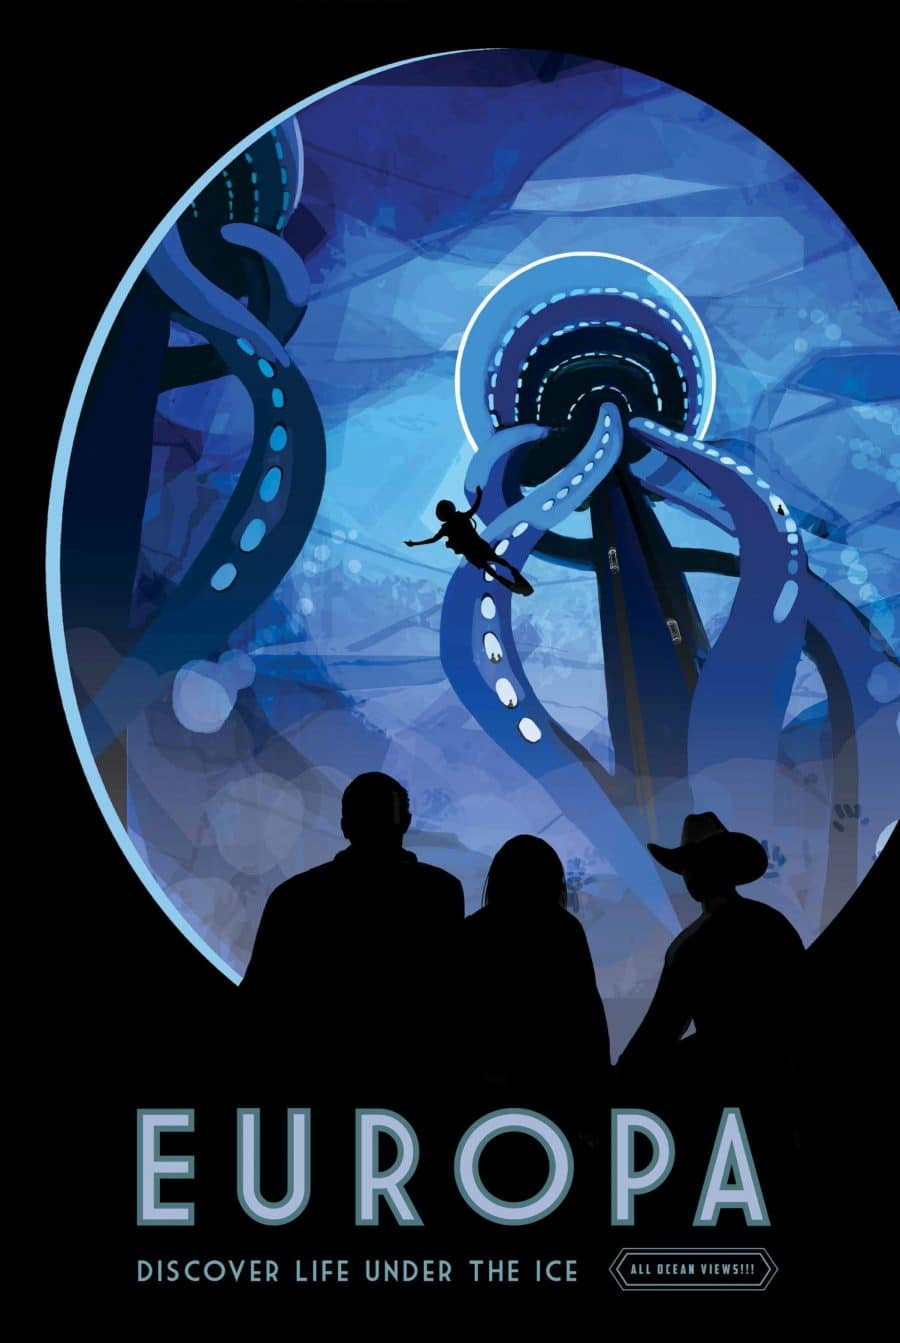 Europa Discover Life Under the Ice Visions of the Future Poster Series Designed by JPL